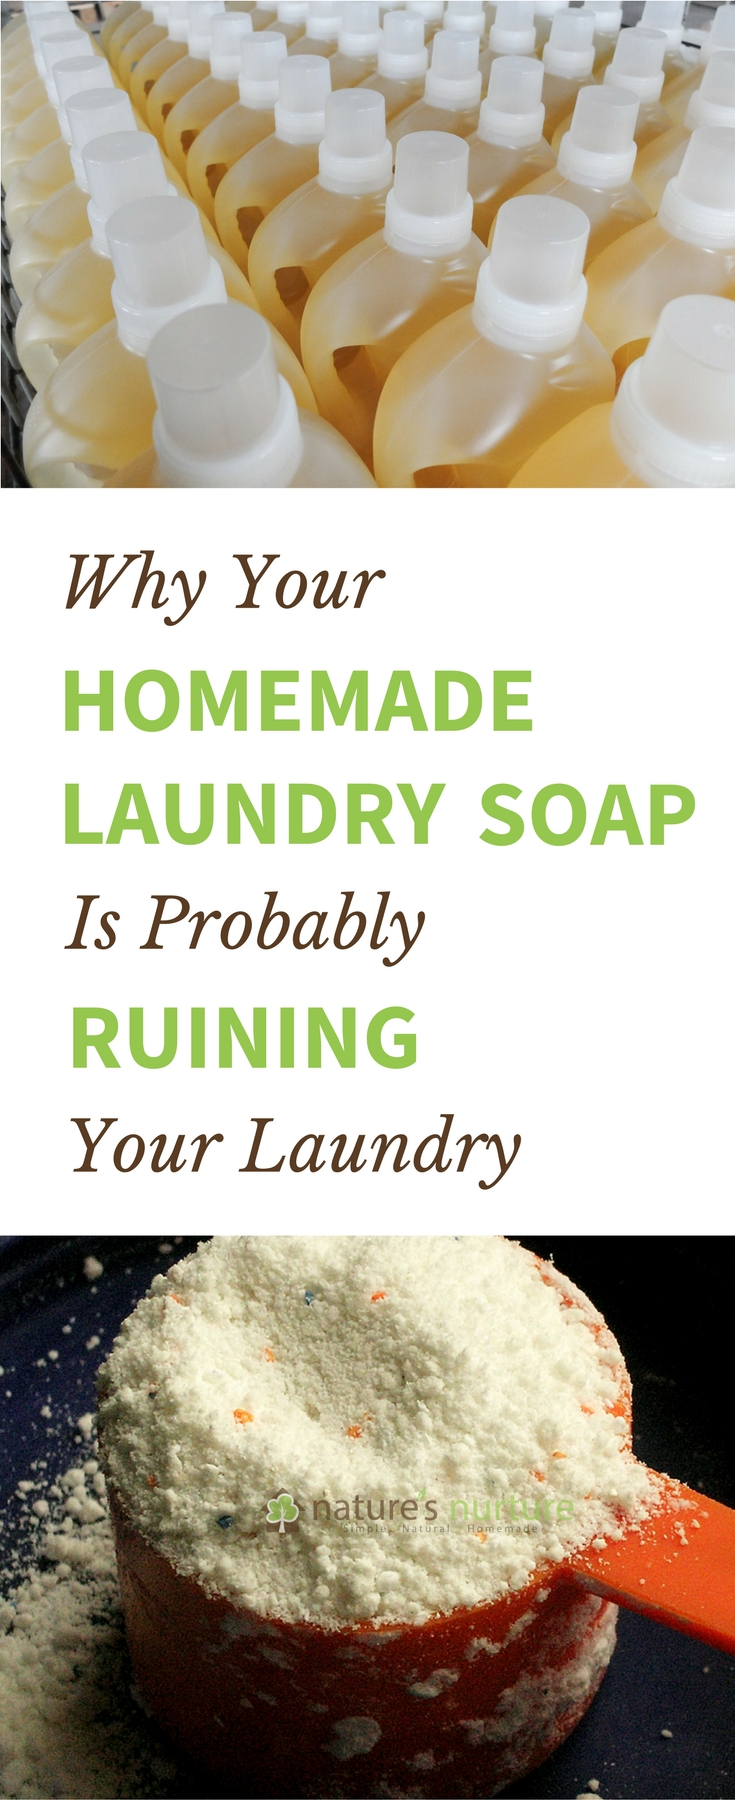 There's a big problem with your homemade laundry soap, and you're not going to like it. Read this before doing your next load of laundry!